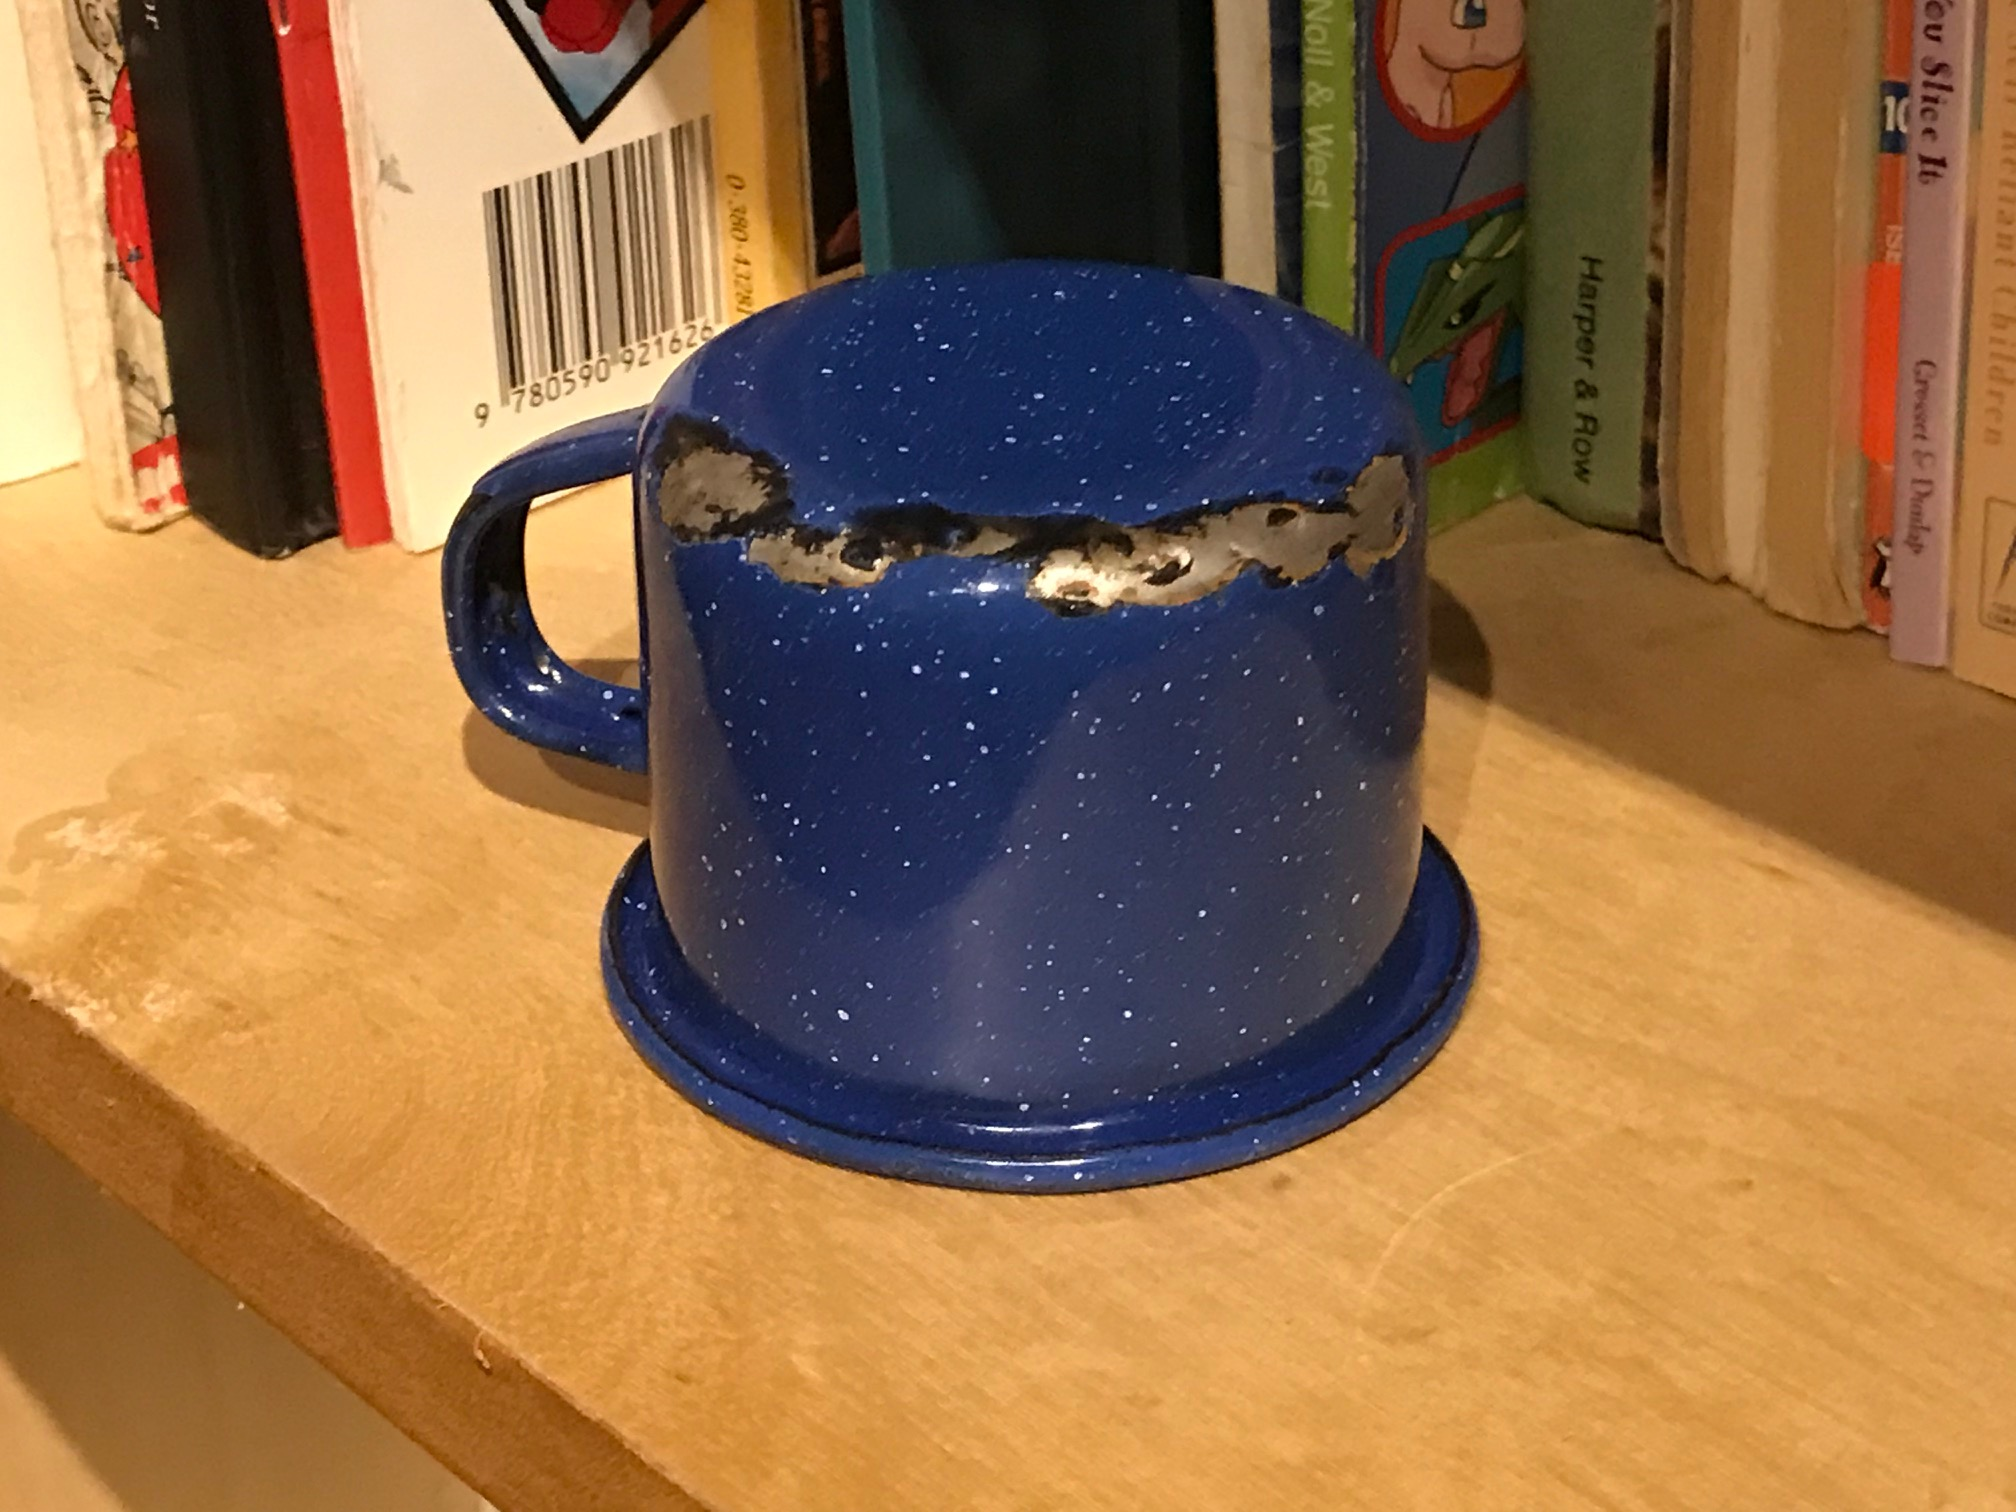 Small Blue Enamelware Camping Cup / Espresso Cup: 48 ppm Lead, 63 ppm Arsenic, 137 ppm Antimony. Low levels of 3 neurotoxins.